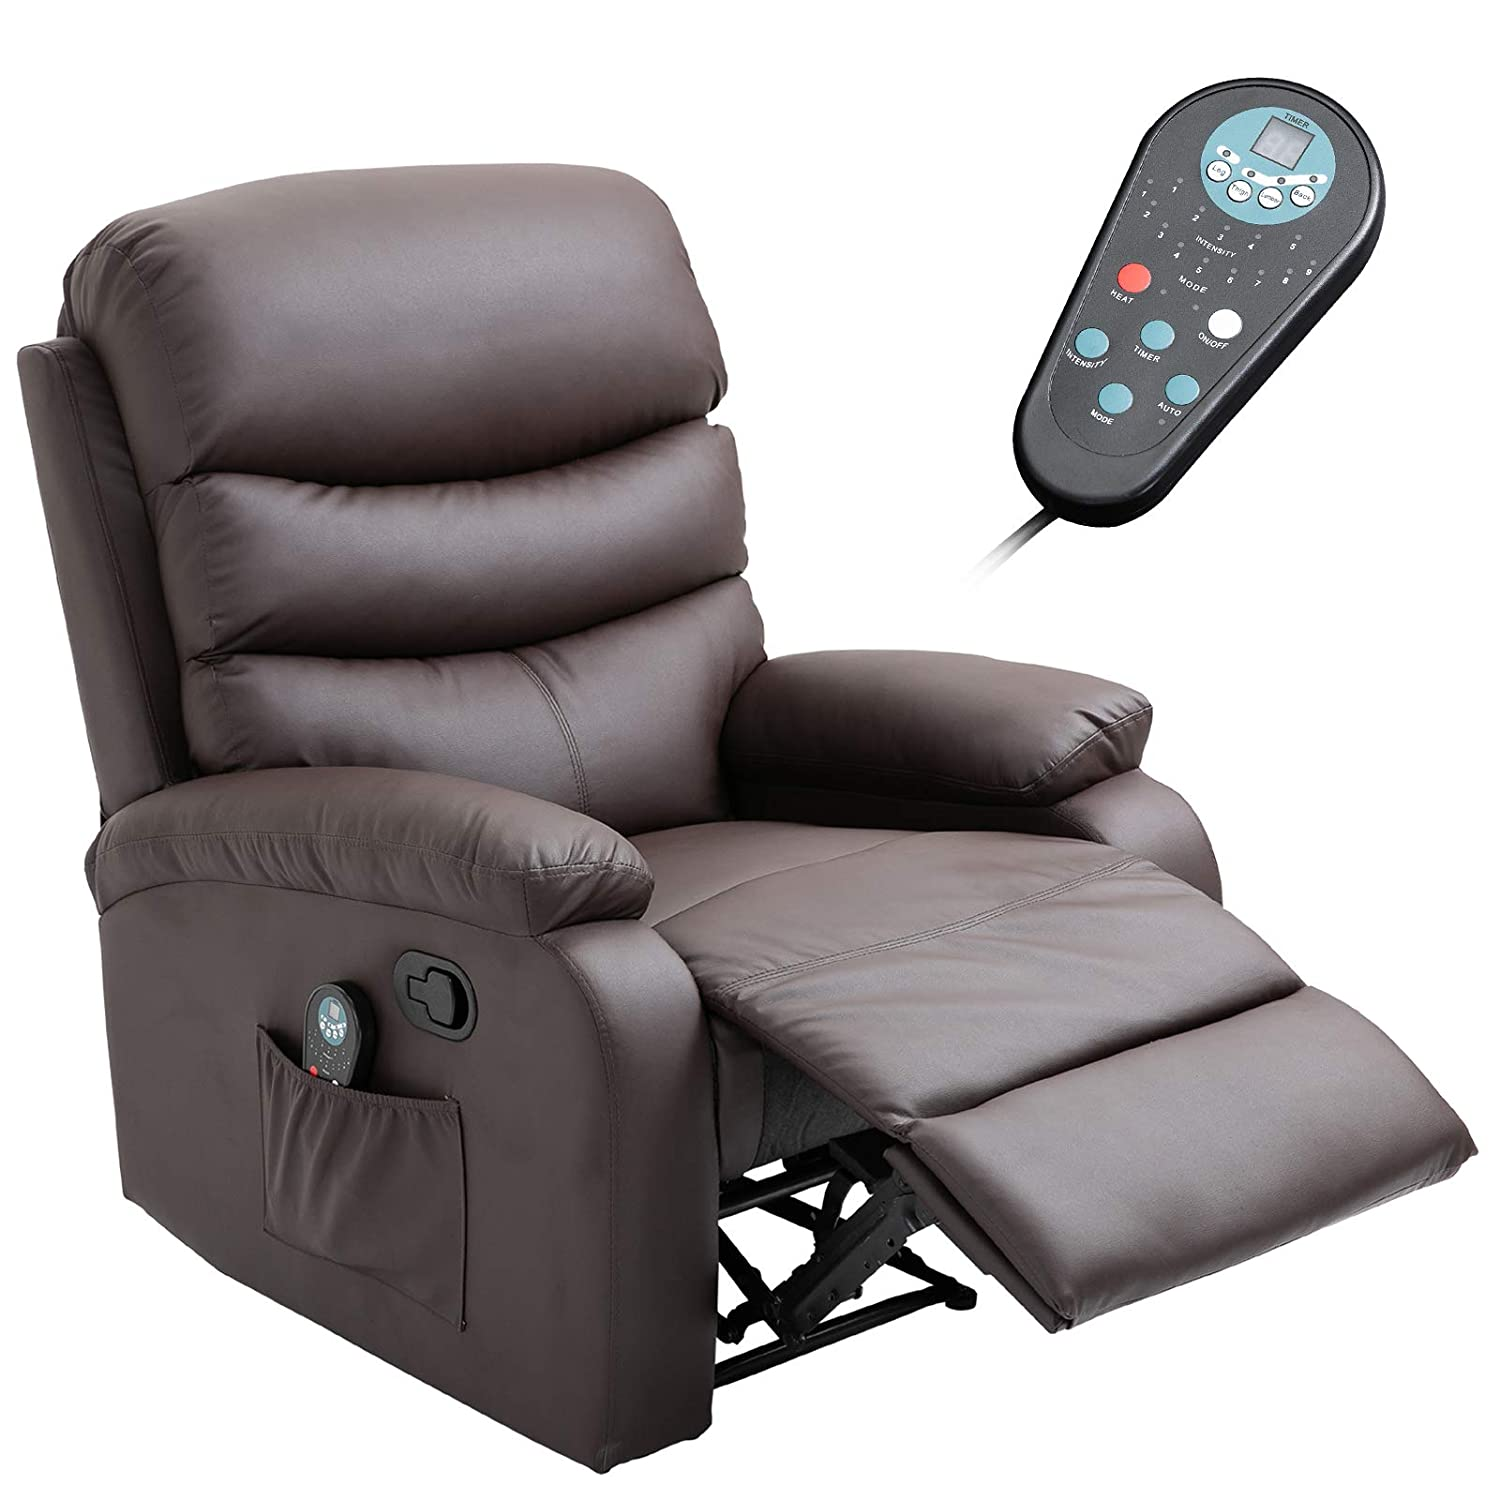 HOMCOM Manual Massage Recliner Chair with Heat and Remote Control, 8 Massaging Points, PU Leather, Brown